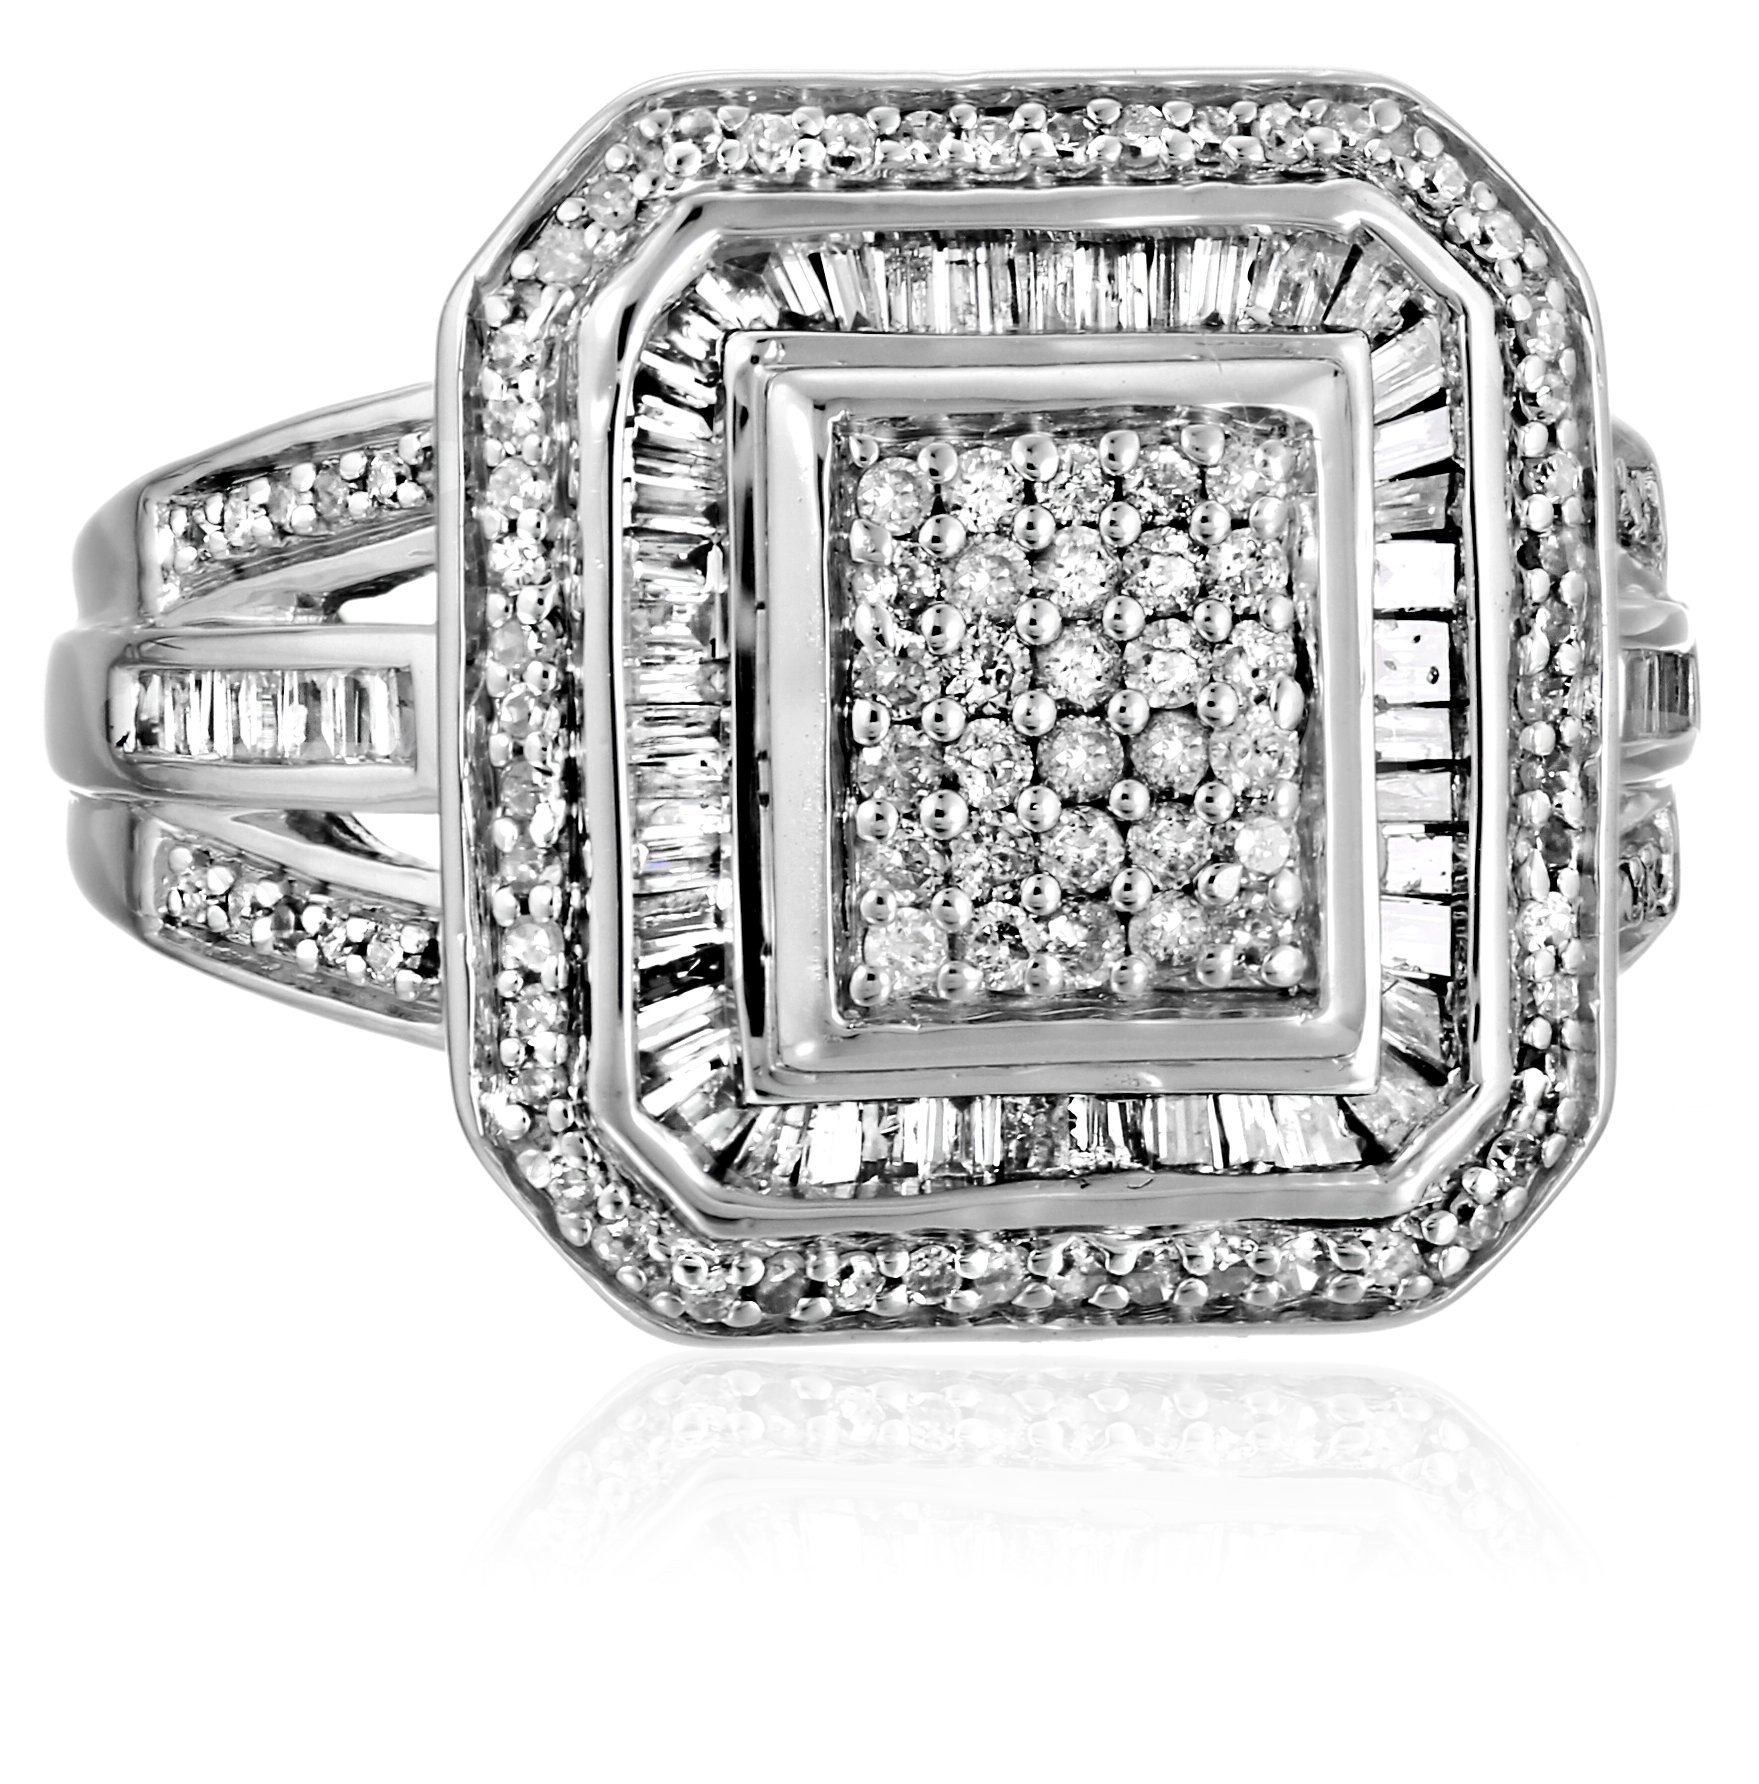 Sterling Silver Diamond (1cttw, I-J Color, I2-I3 Clarity) Fashion Ring, Size 8